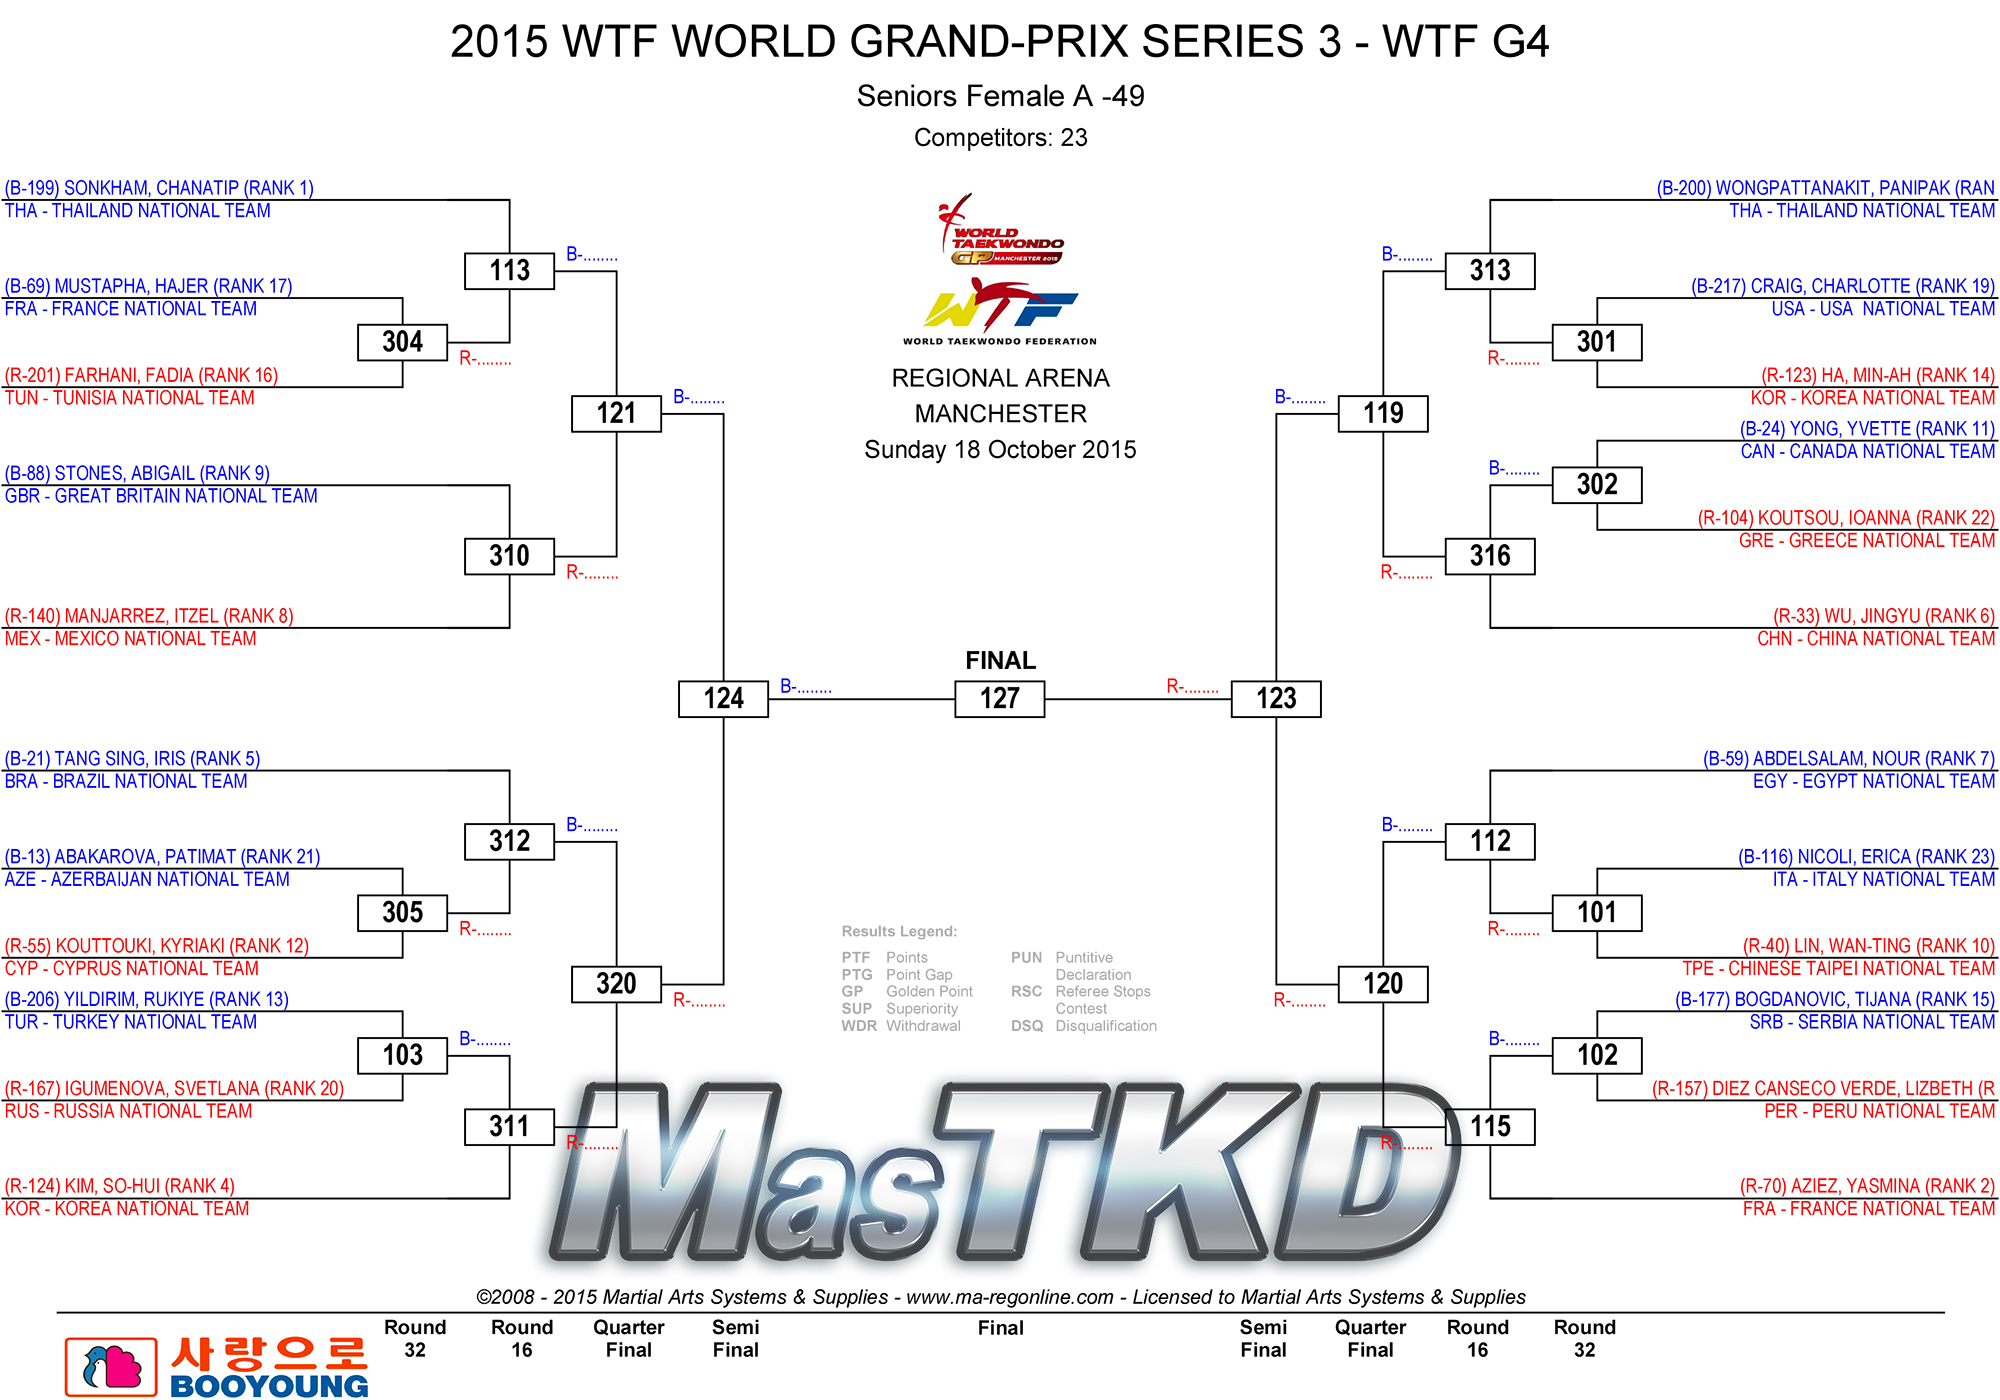 F-49_2015_WTF_WORLD_GRAND-PRIX_SERIES_3_DRAW_D3